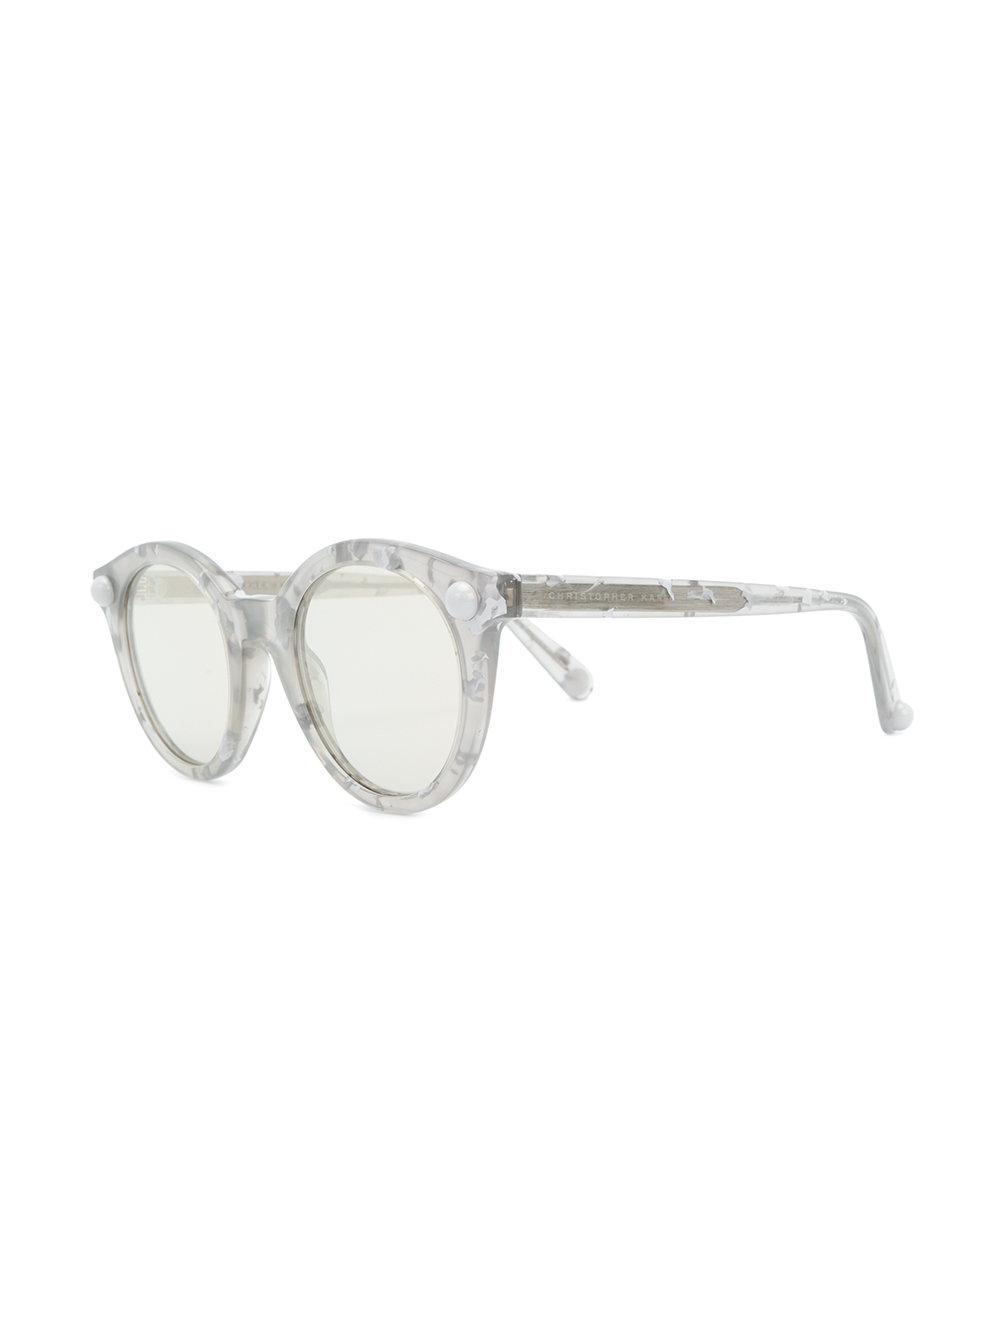 Christopher Kane Round Frame Marble-effect Sunglasses in Grey (Grey)